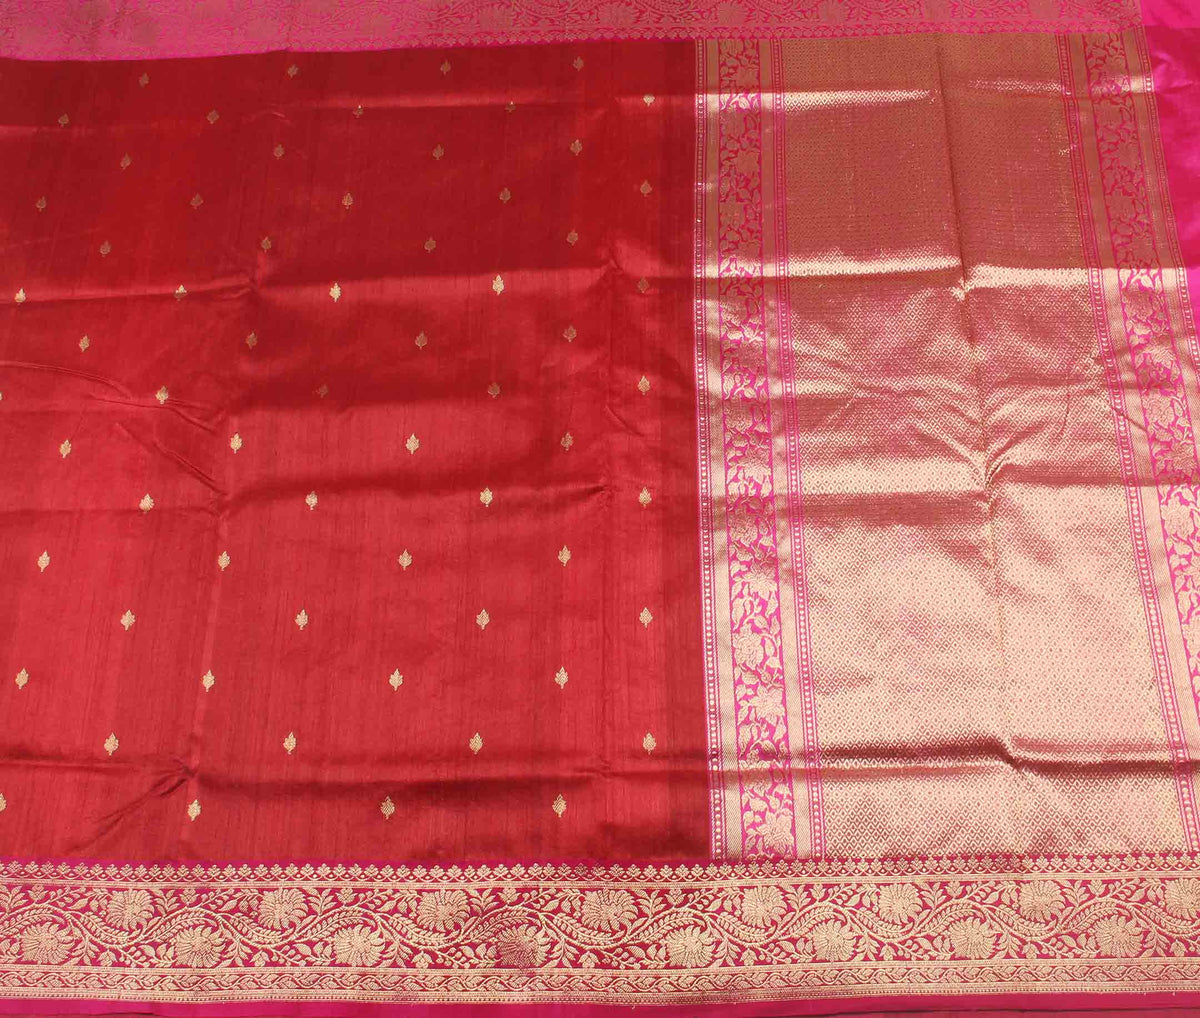 Red Tussar Silk Handwoven Banarasi Saree with mini leaf motifs (2) flat